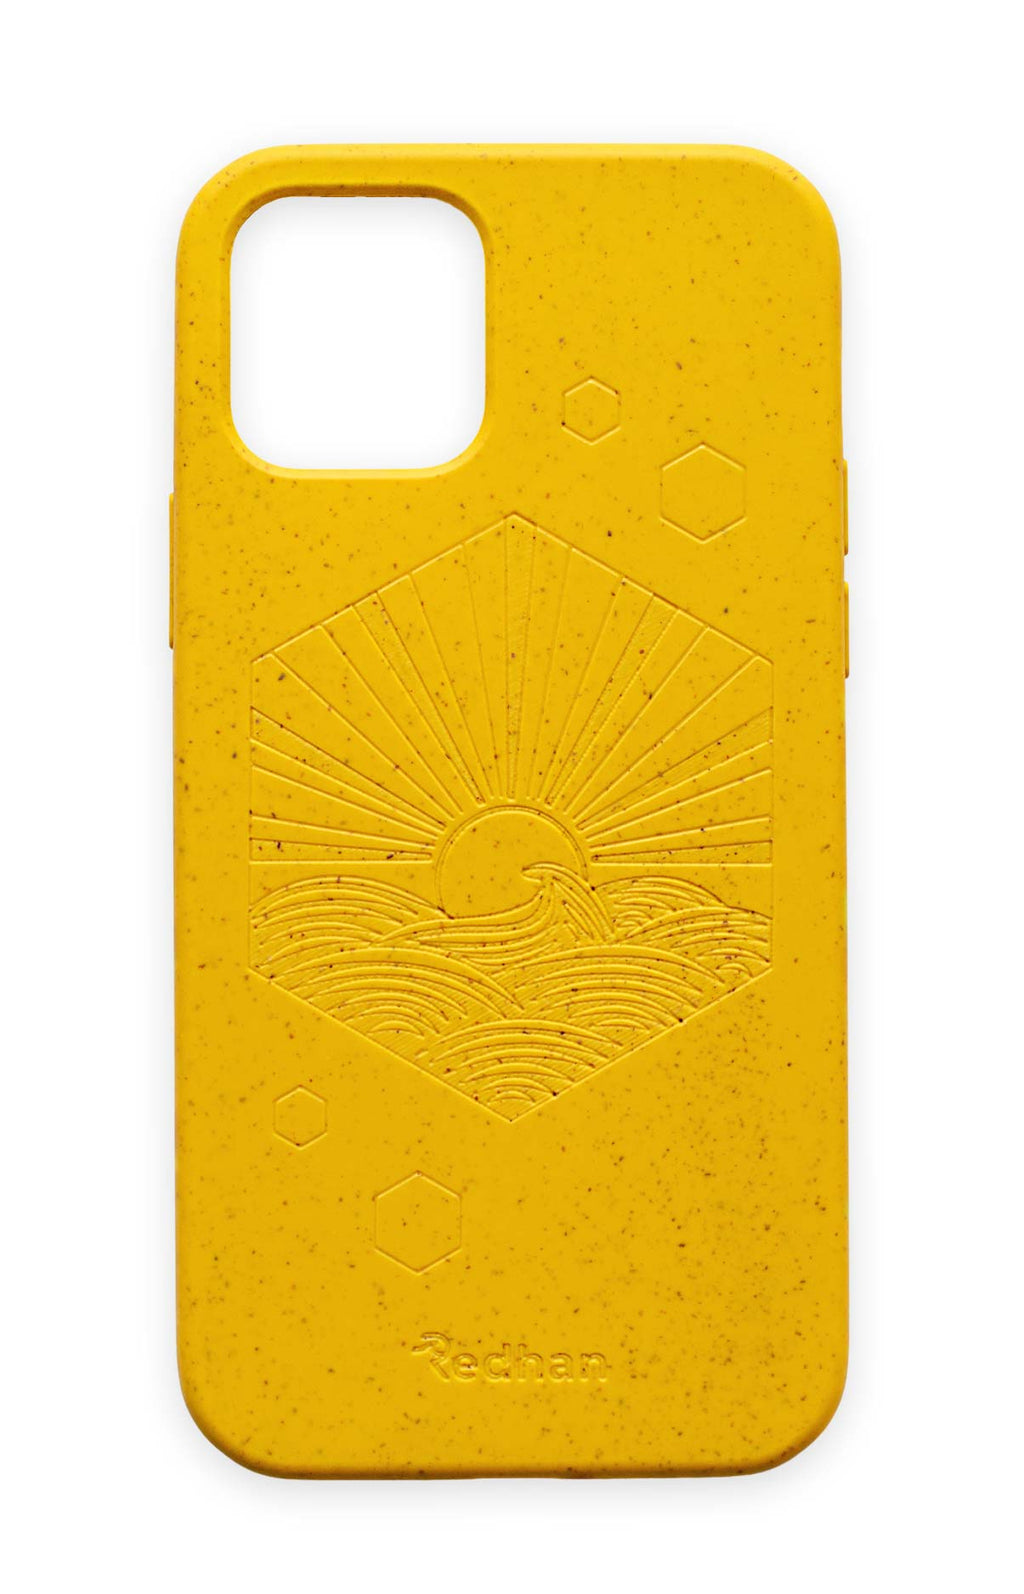 Eco-Friendly Phone Case Yellow,  iPhone 12 Mini Phone case in Yellow, Biodegradable